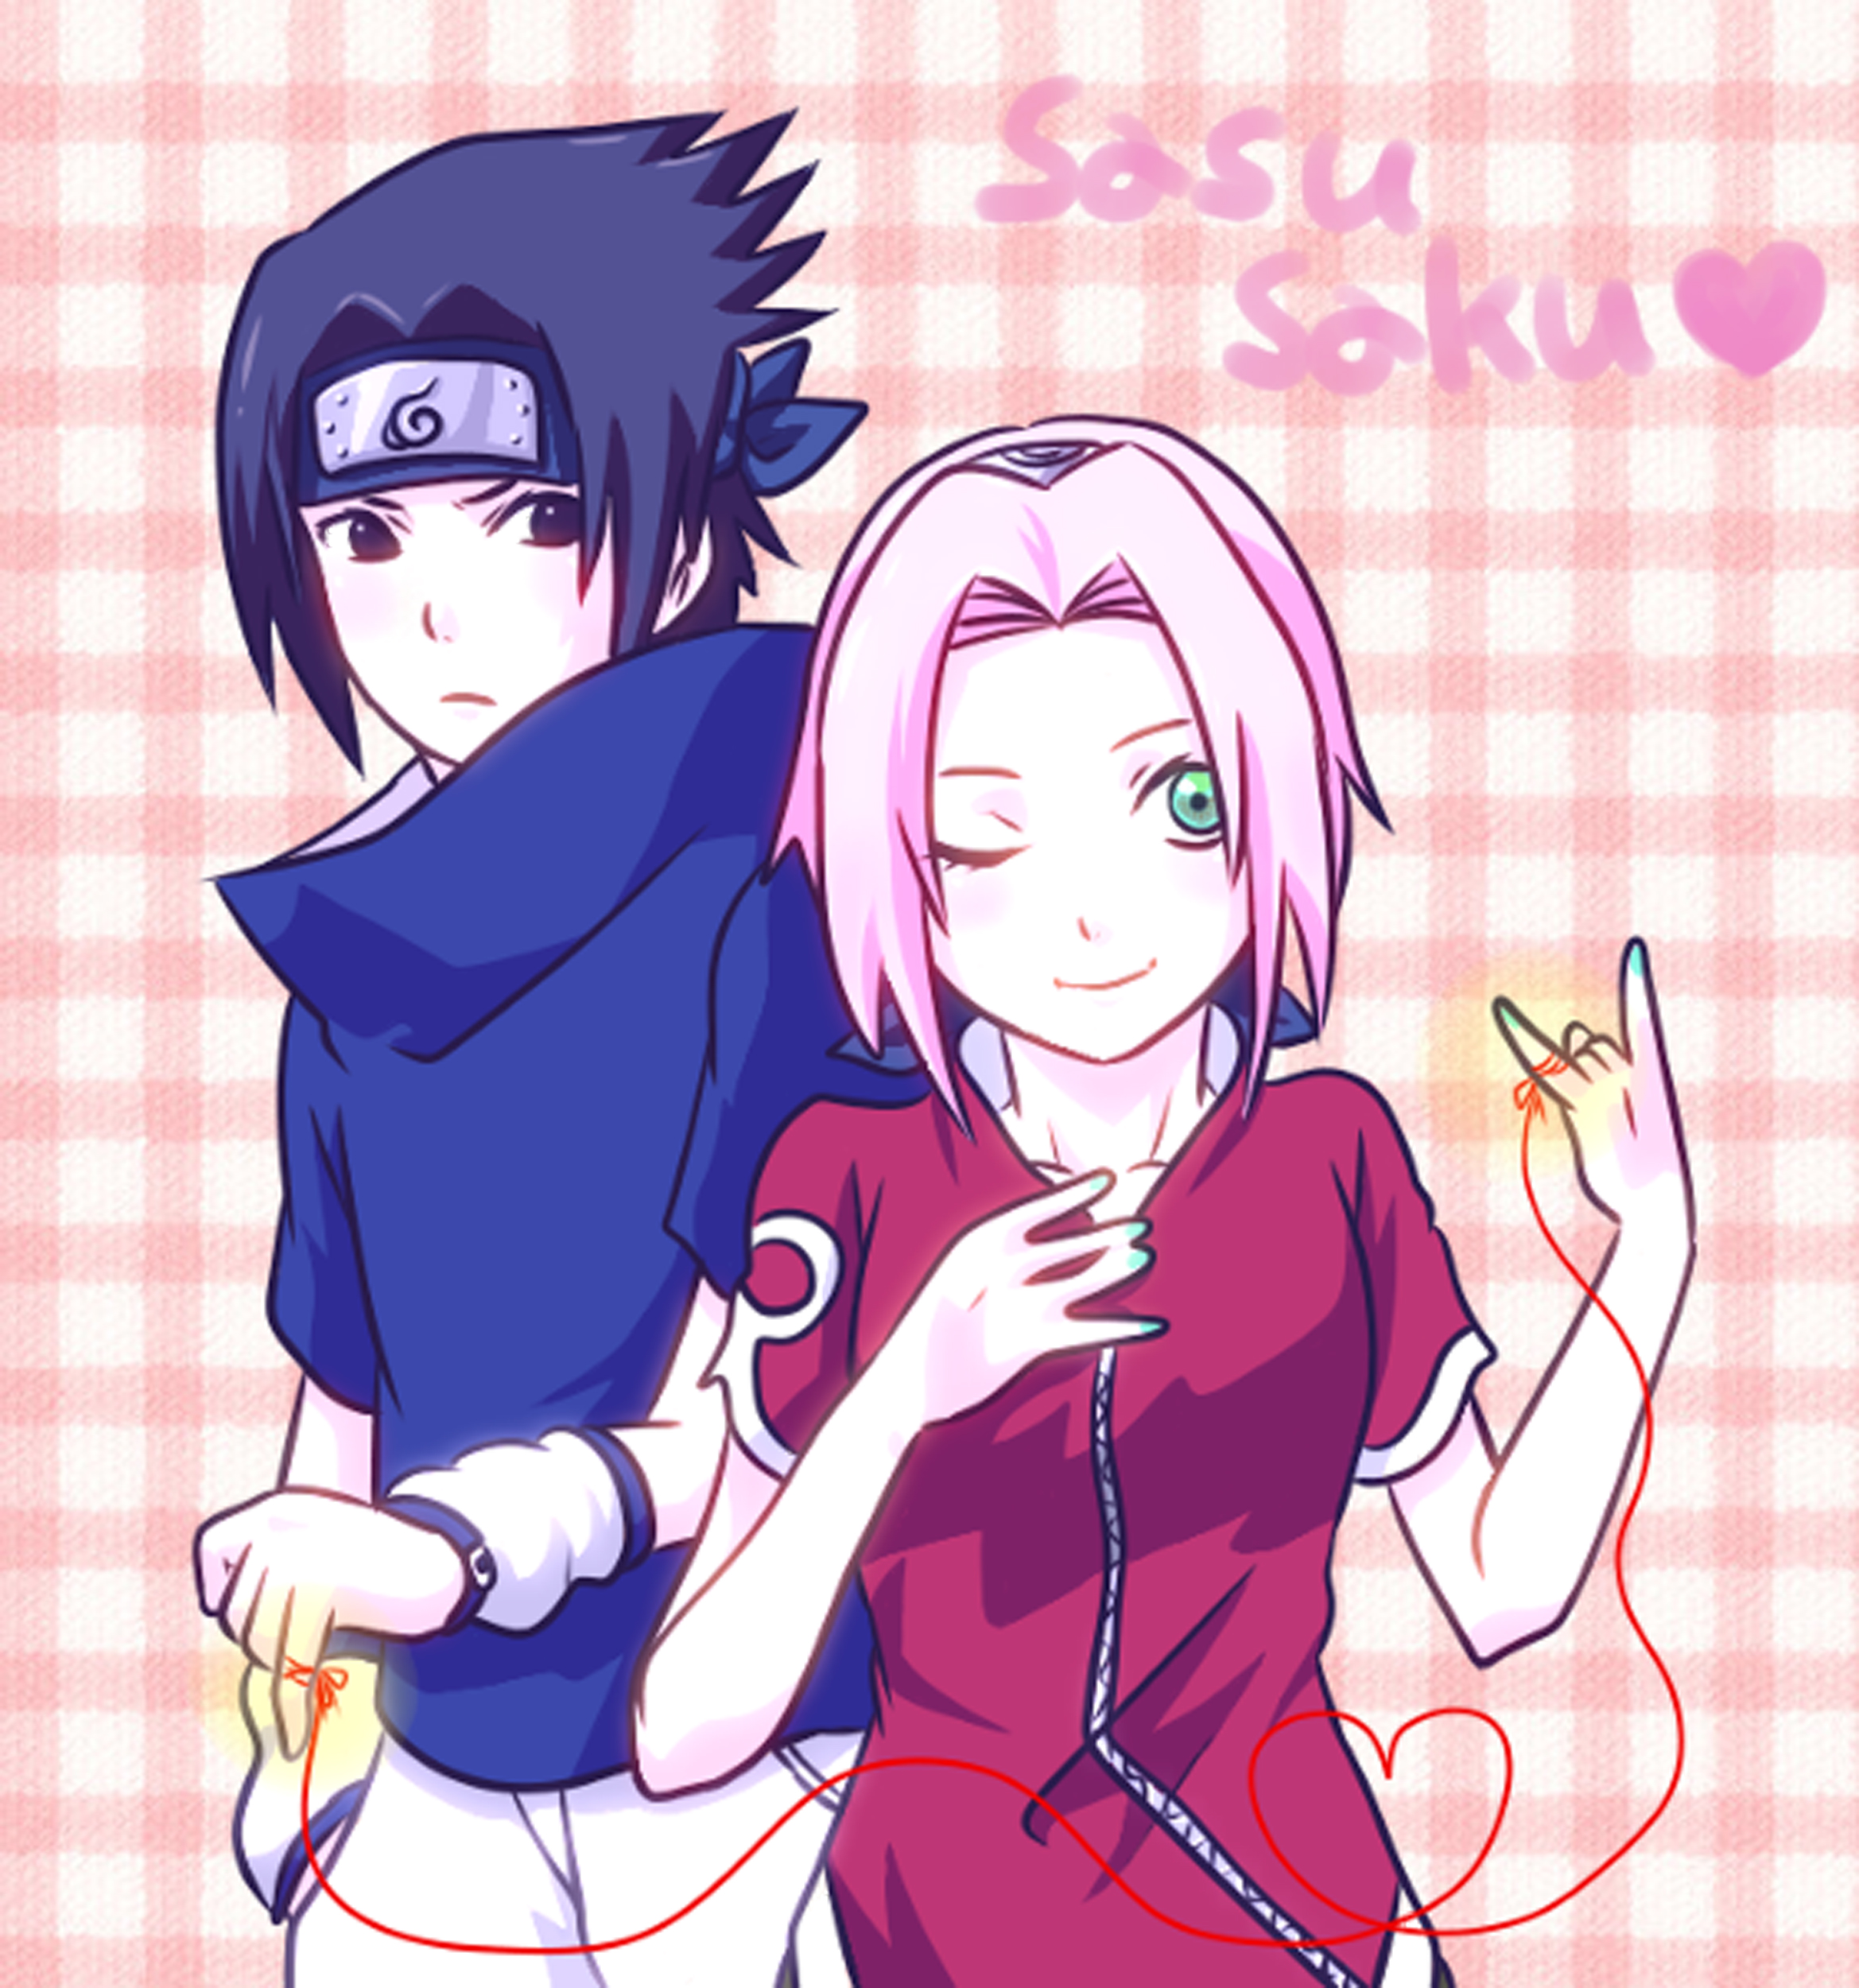 SasuSaku Naruto Couples ♥ Fan Art Fanpop